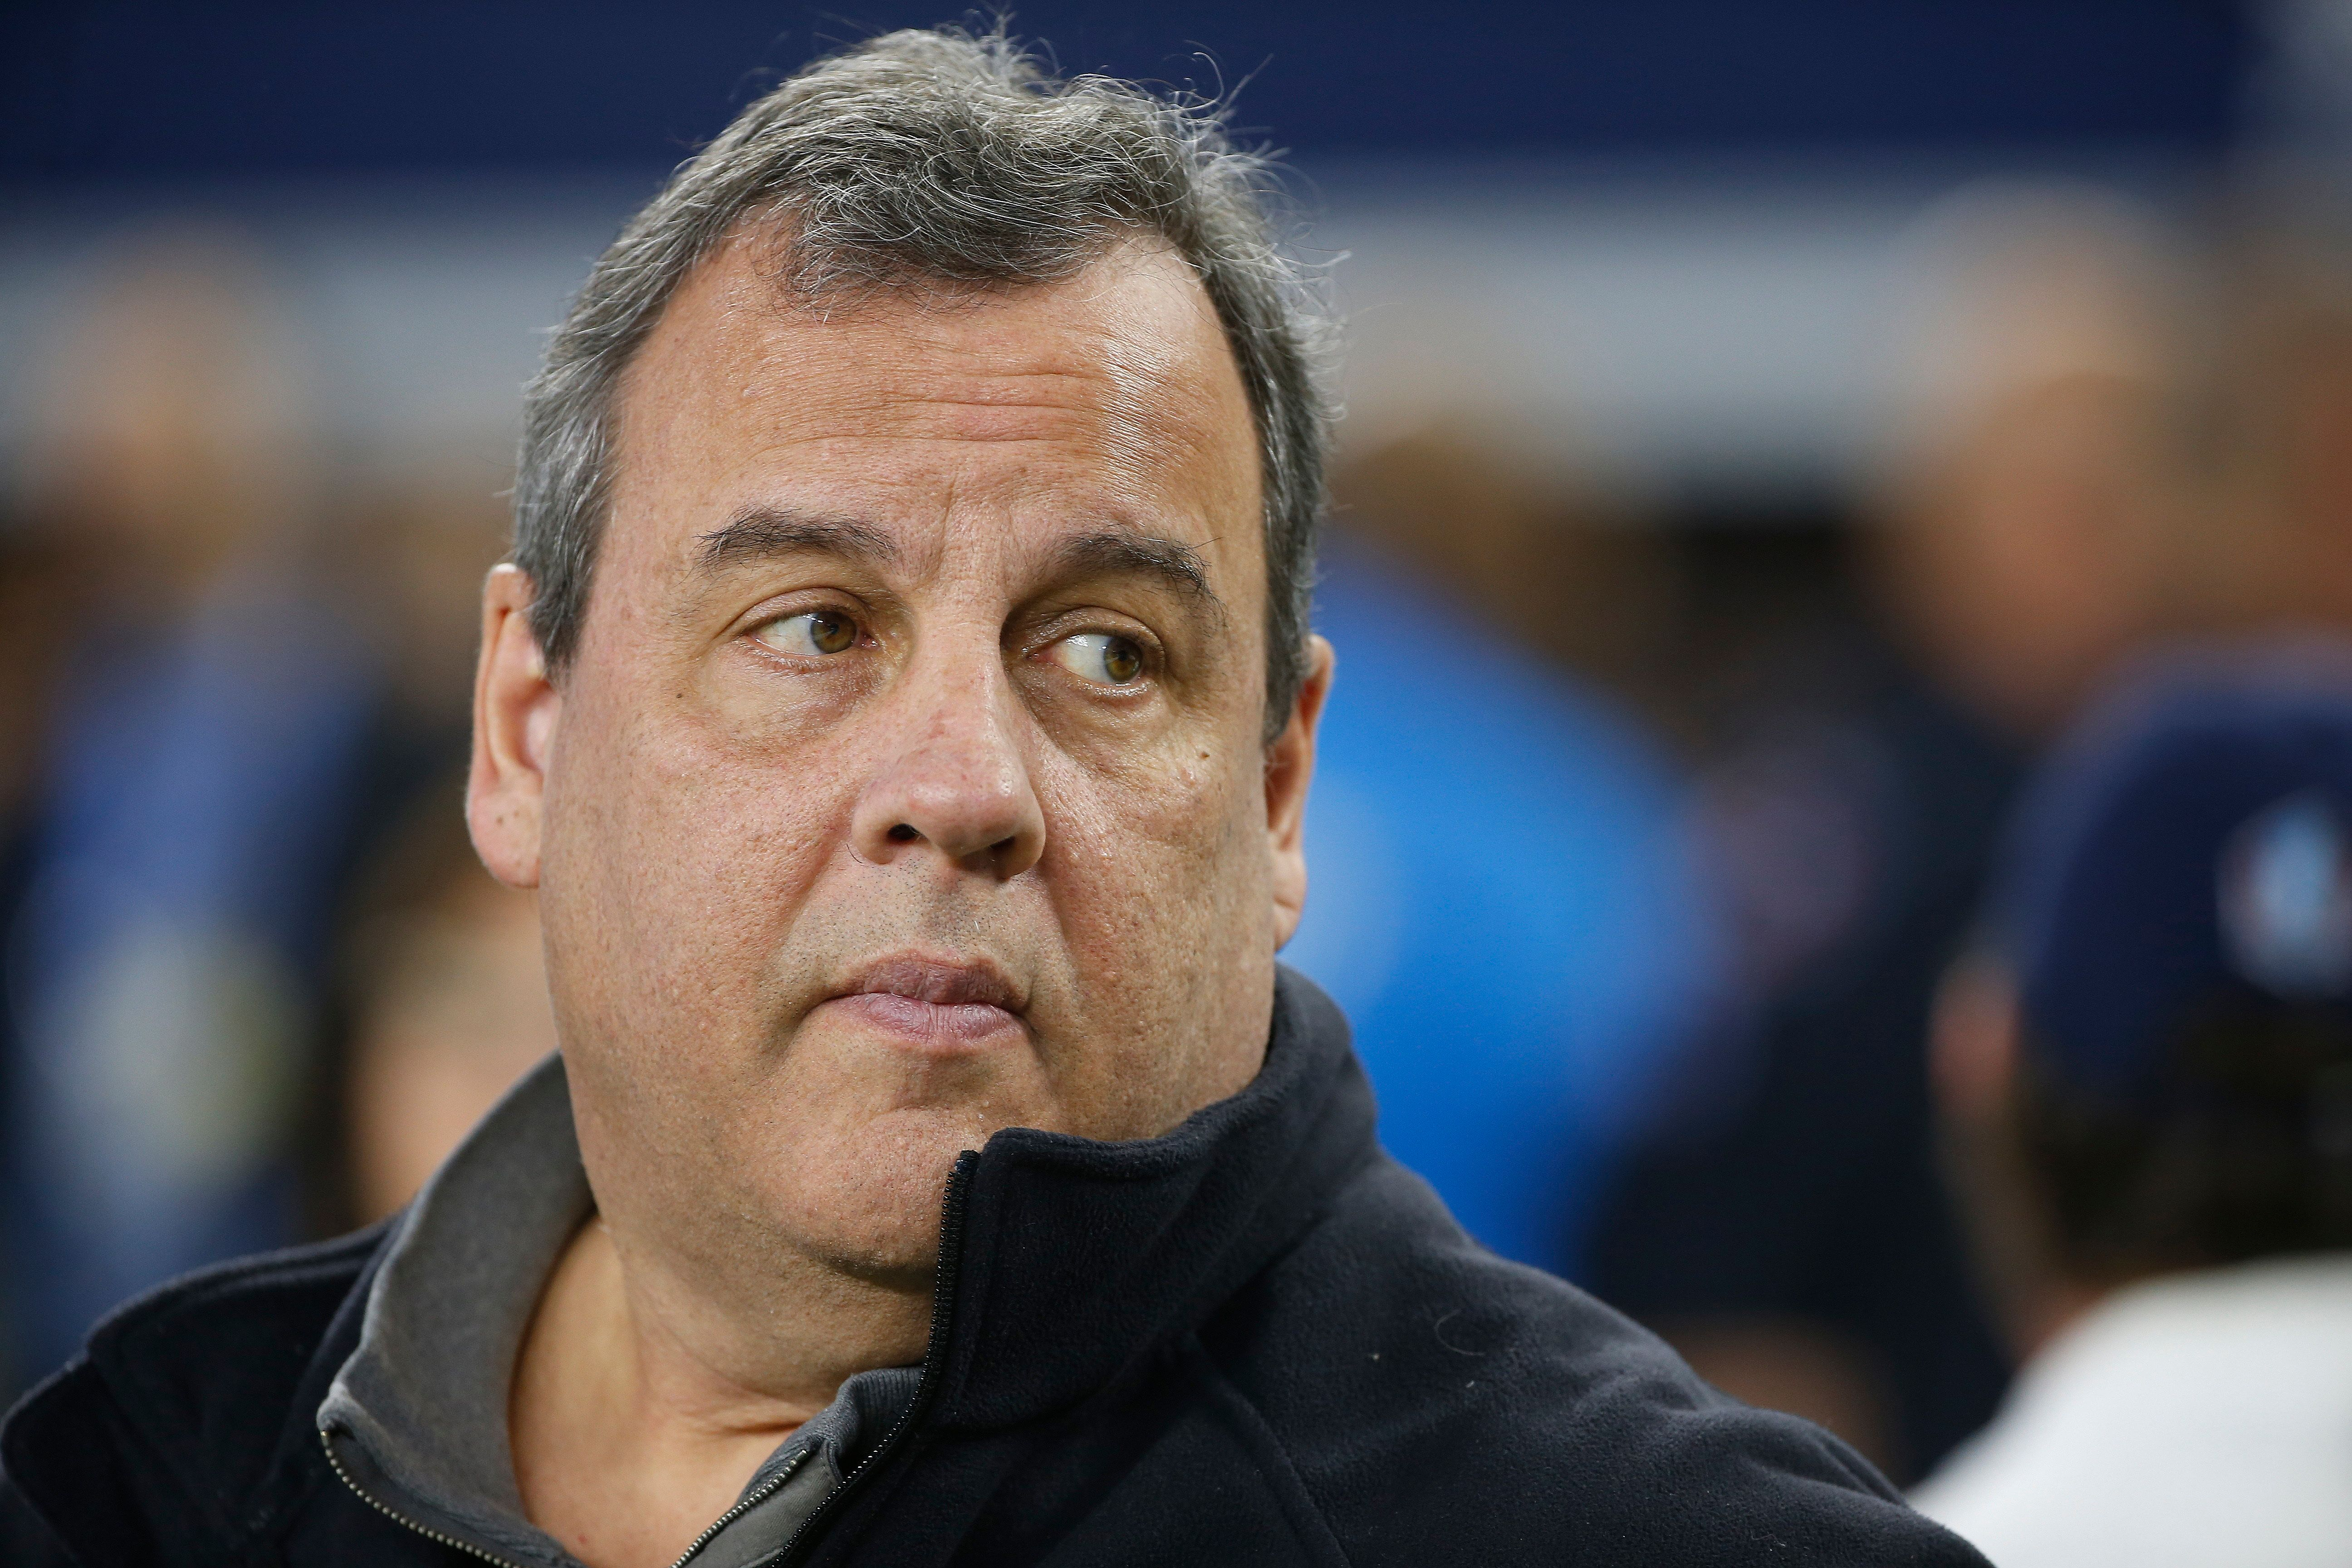 Former New Jersey Gov. Chris Christie walks on the field before a NFC wild-card NFL football game, between the Dallas Cowboys and the Seattle Seahawks in Arlington, Texas, Saturday, Jan. 5, 2019. (AP Photo/Ron Jenkins)